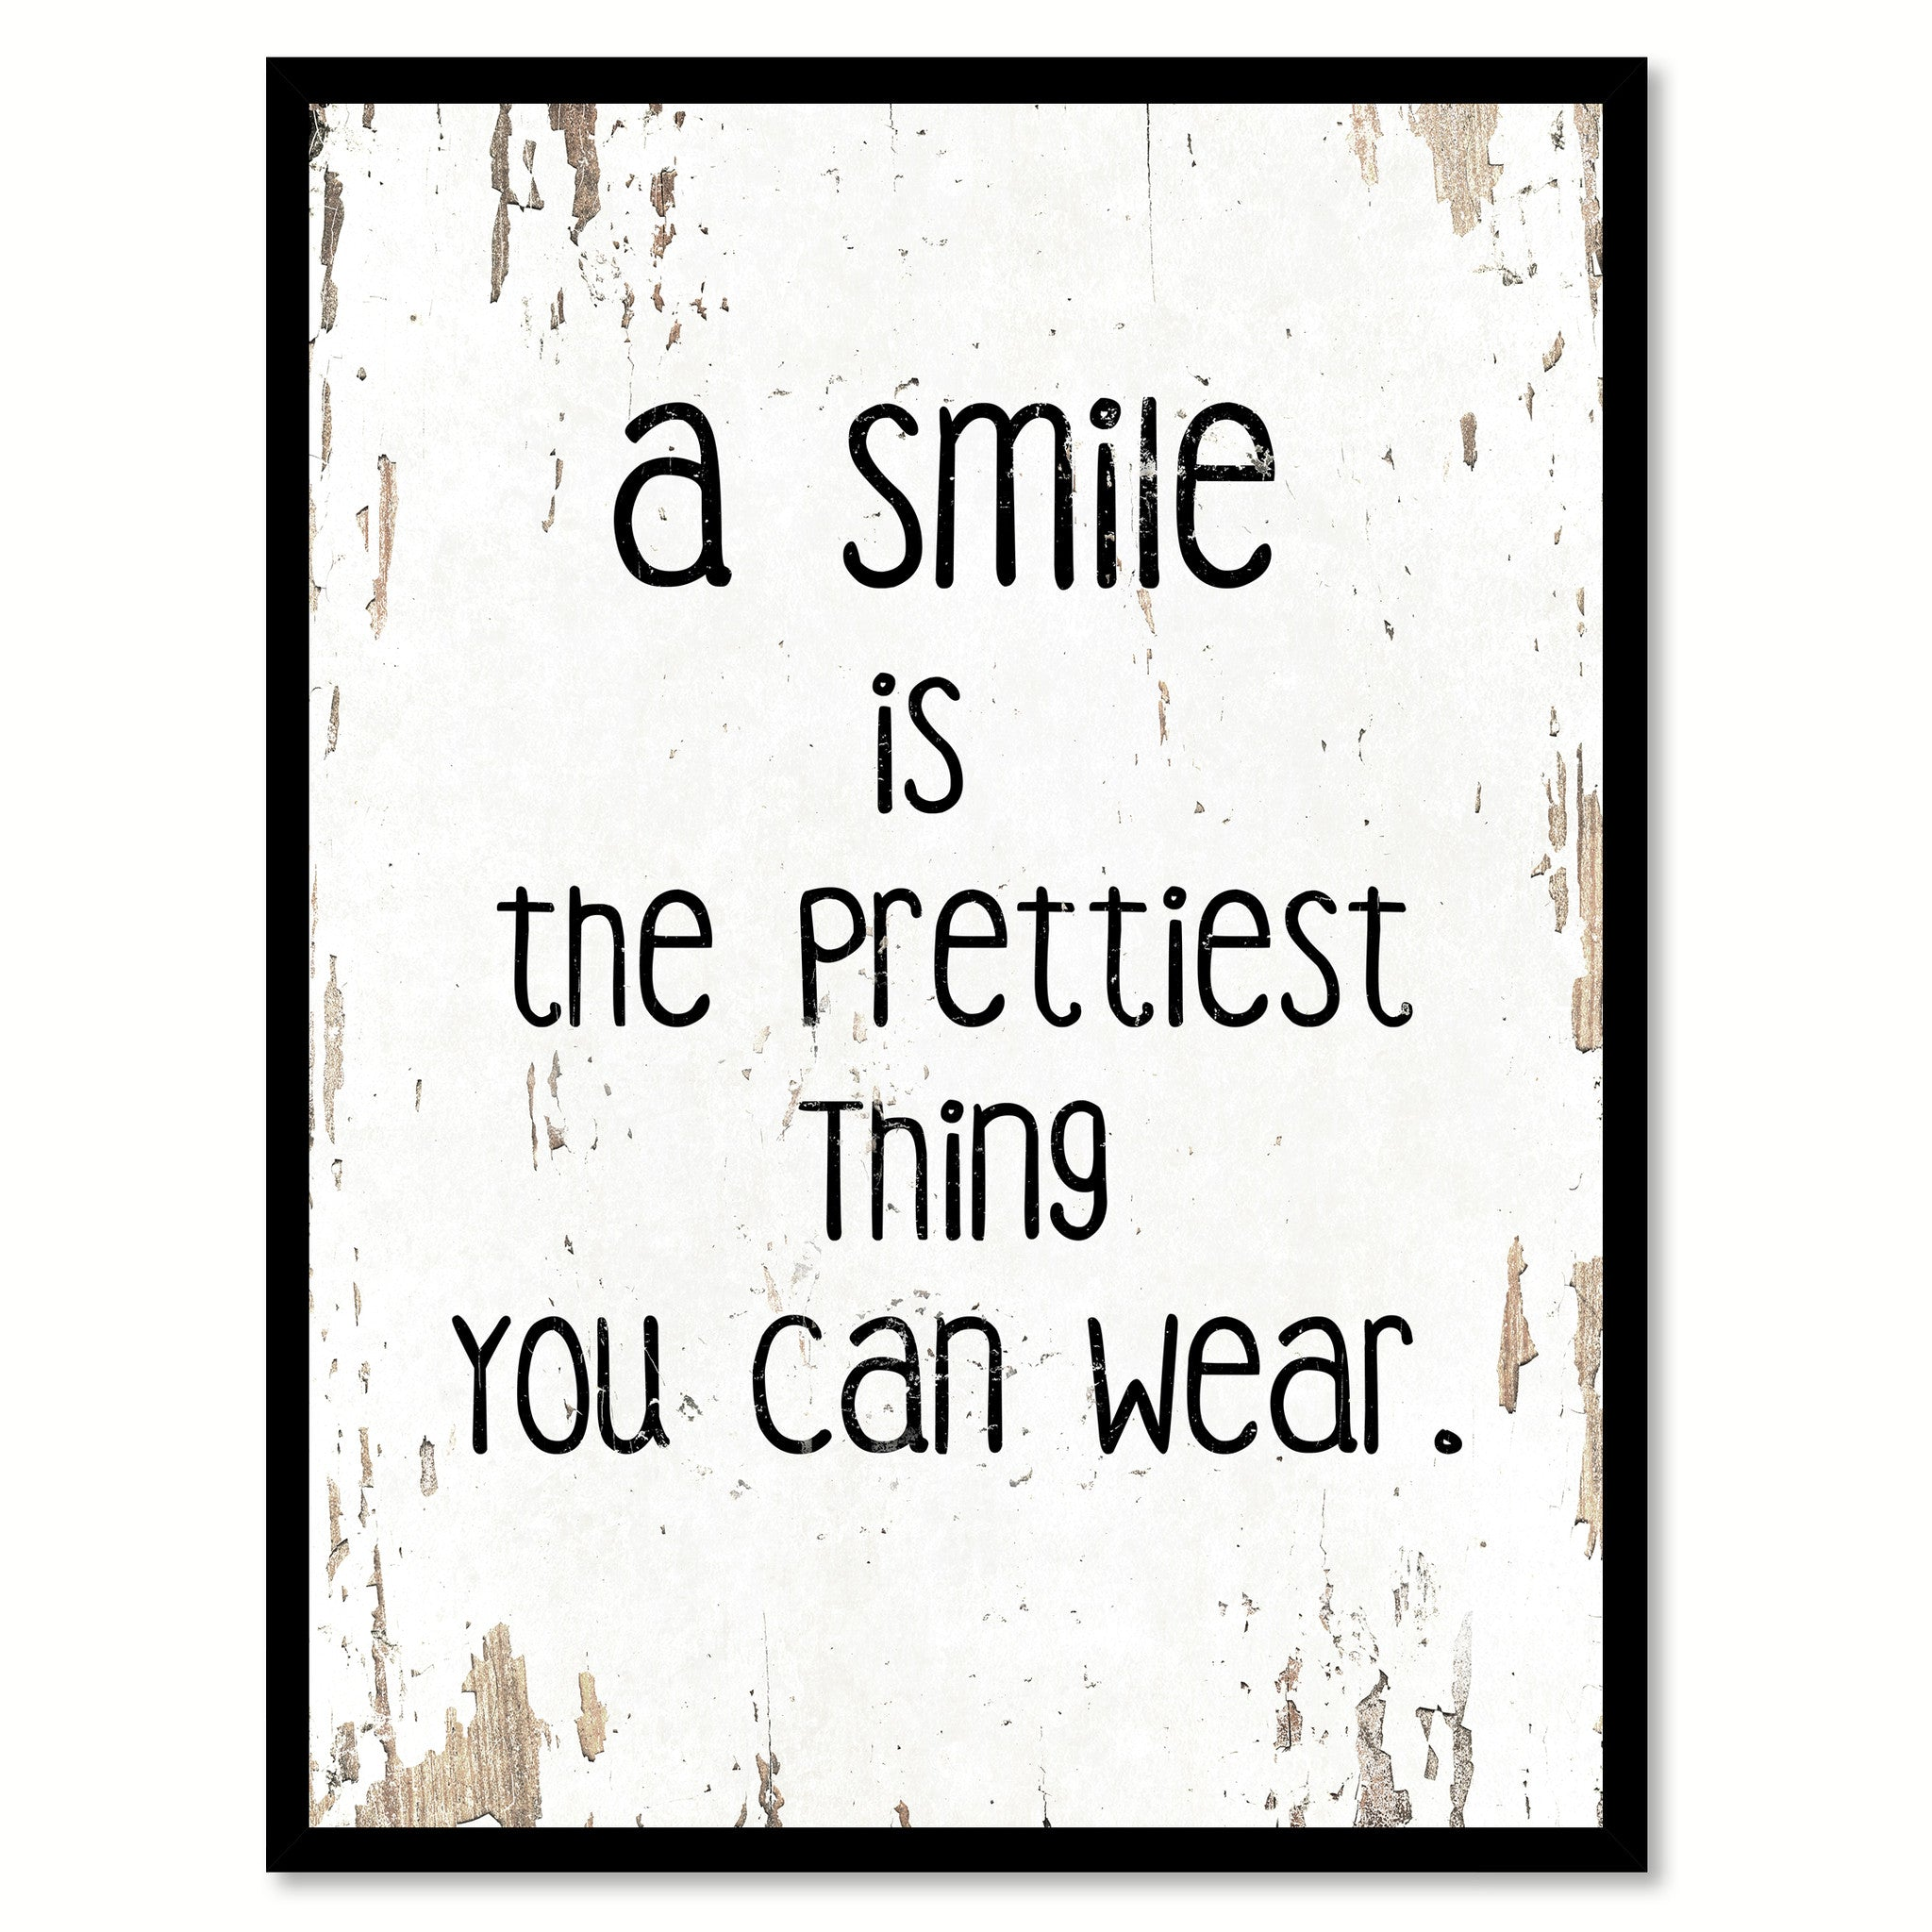 office motivation ideas. A Smile Is The Prettiest Thing You Can Wear Motivation Quote Saying Gift Ideas Home Decor Wall Art 111445 Office